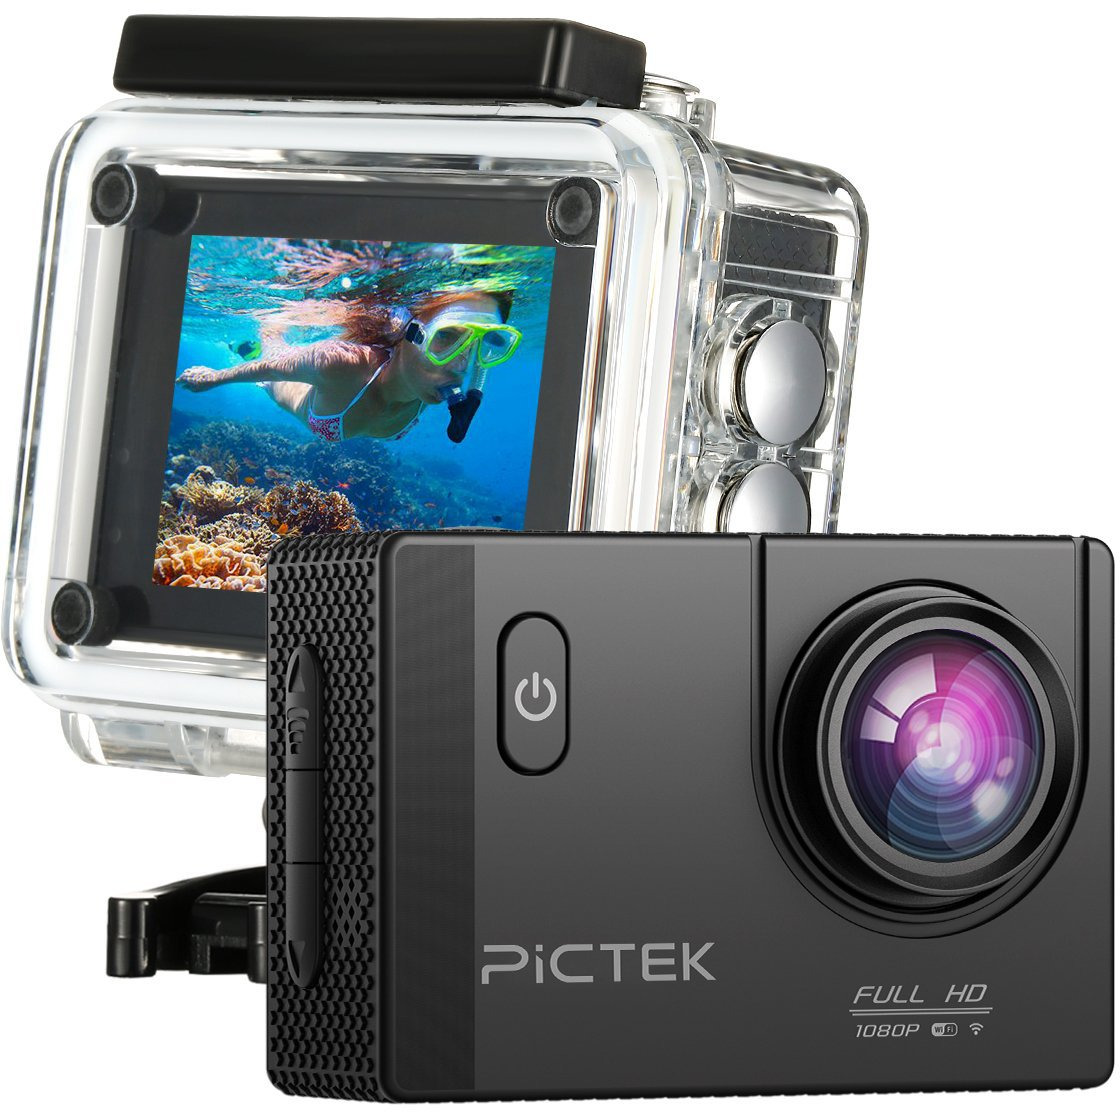 Pictek WiFi Action Camera, [Upgraded Version]Full HD 1080P 30M Underwater Camera, Outdoor Anti-shaking Sports Camera with 170° Ultra Wide-Angle Len/ 2-inch HD LCD Display/ 2Pcs Rechargeable Batteries/ Outdoor Accessories Kits/ Built-in WiFi 632423496810